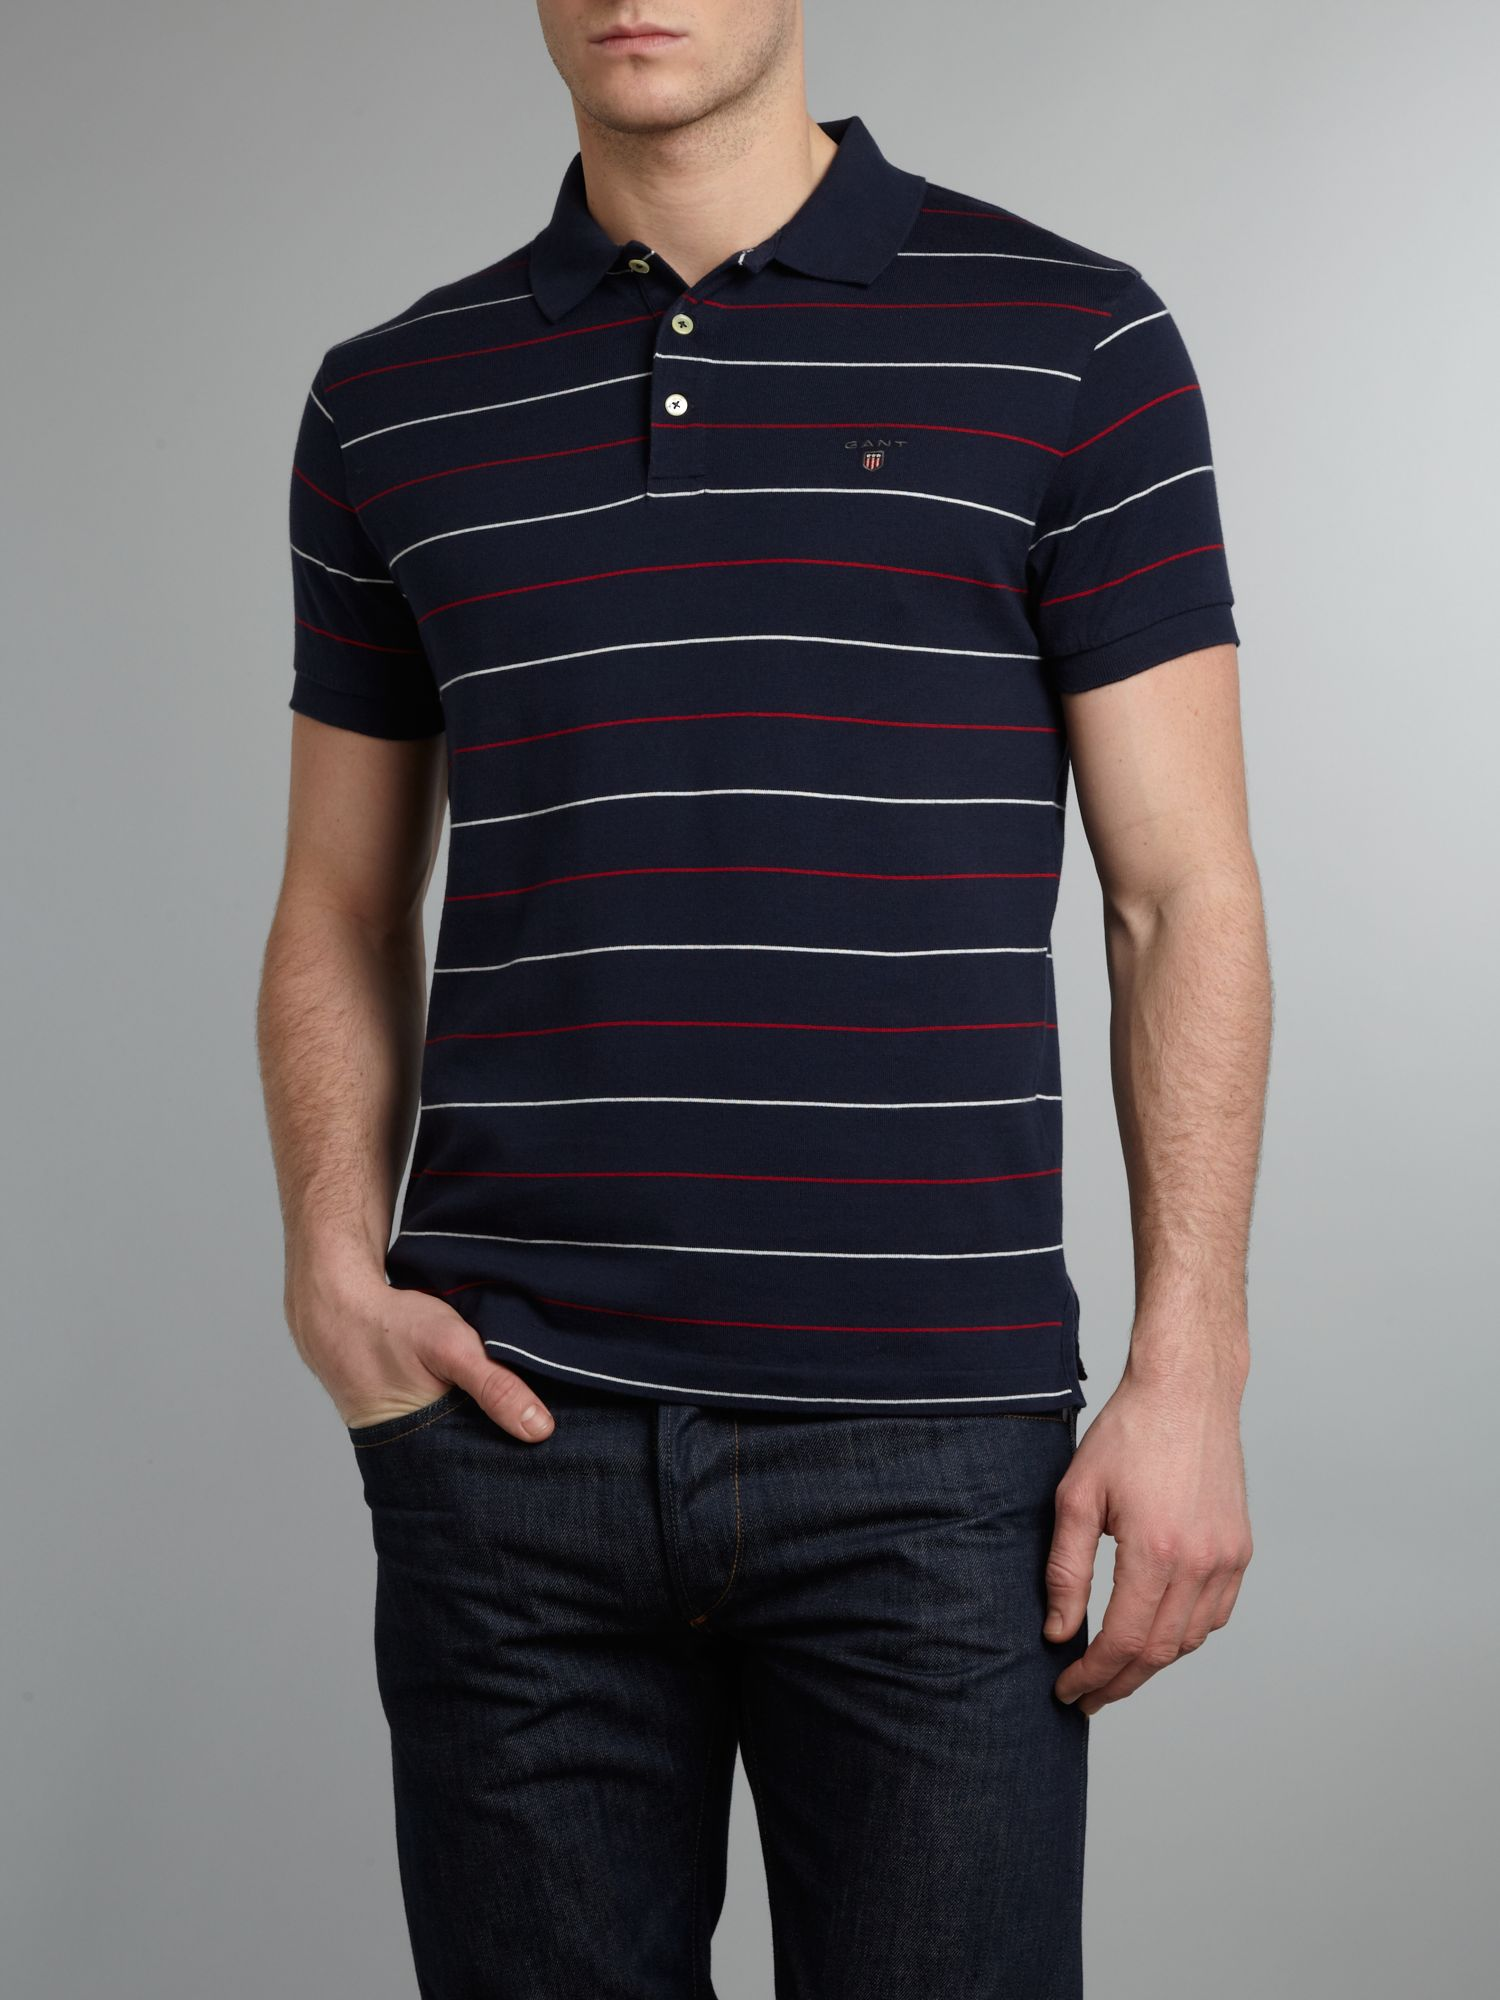 Multi coloured stripe polo shirt